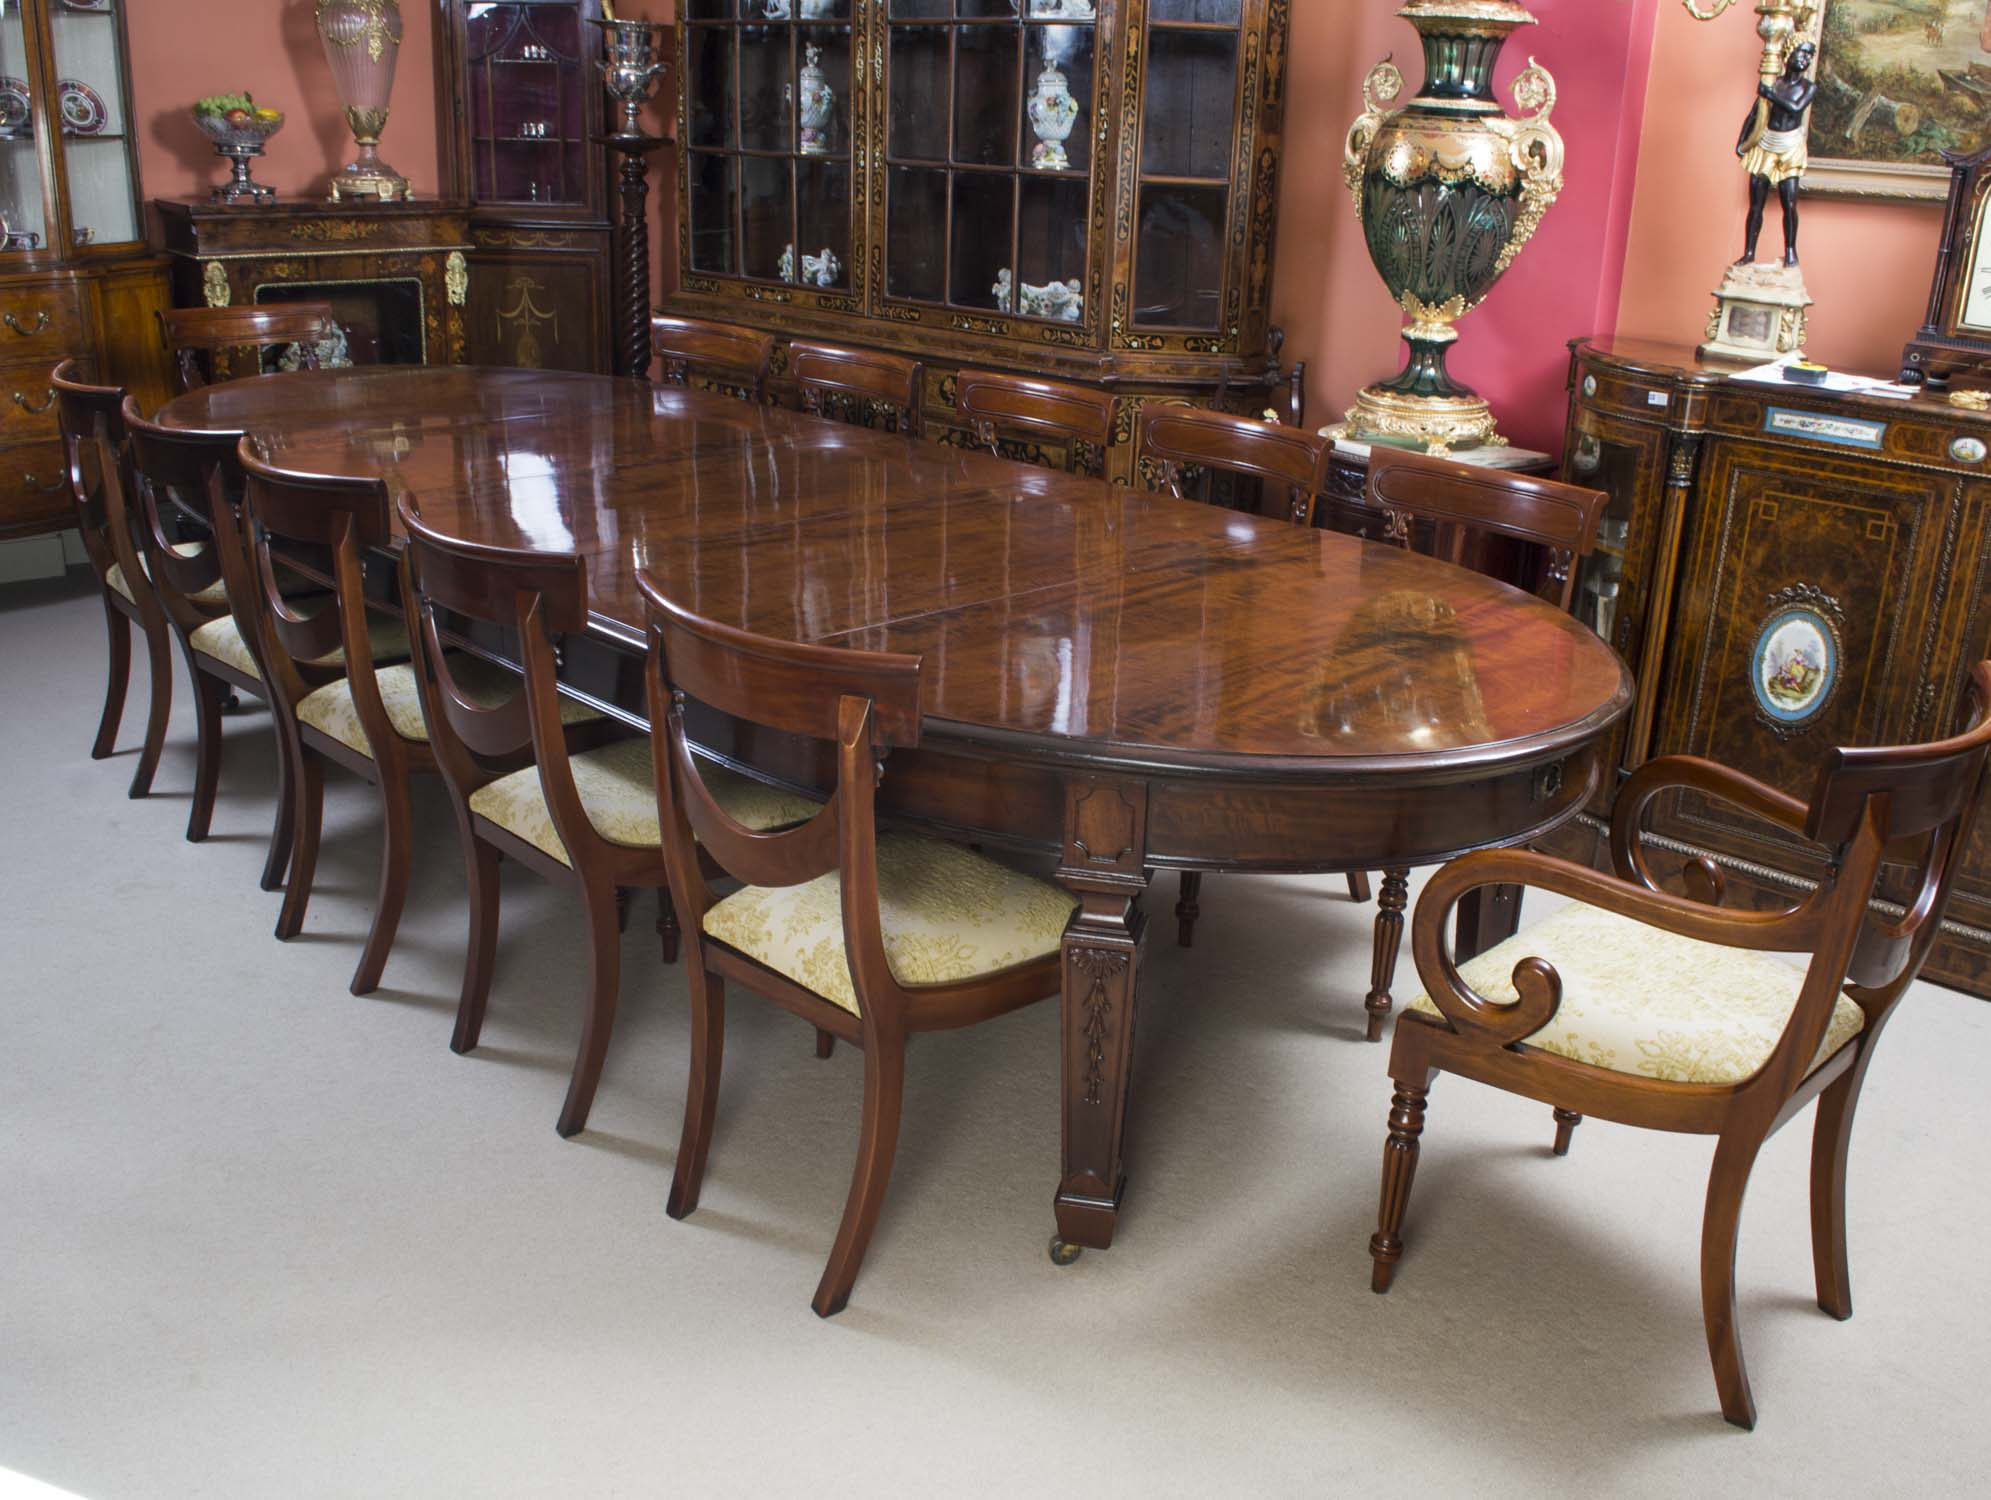 12 Chairs Antique 12ft 6 Quot Edwardian Dining Table 12 Chairs C1900